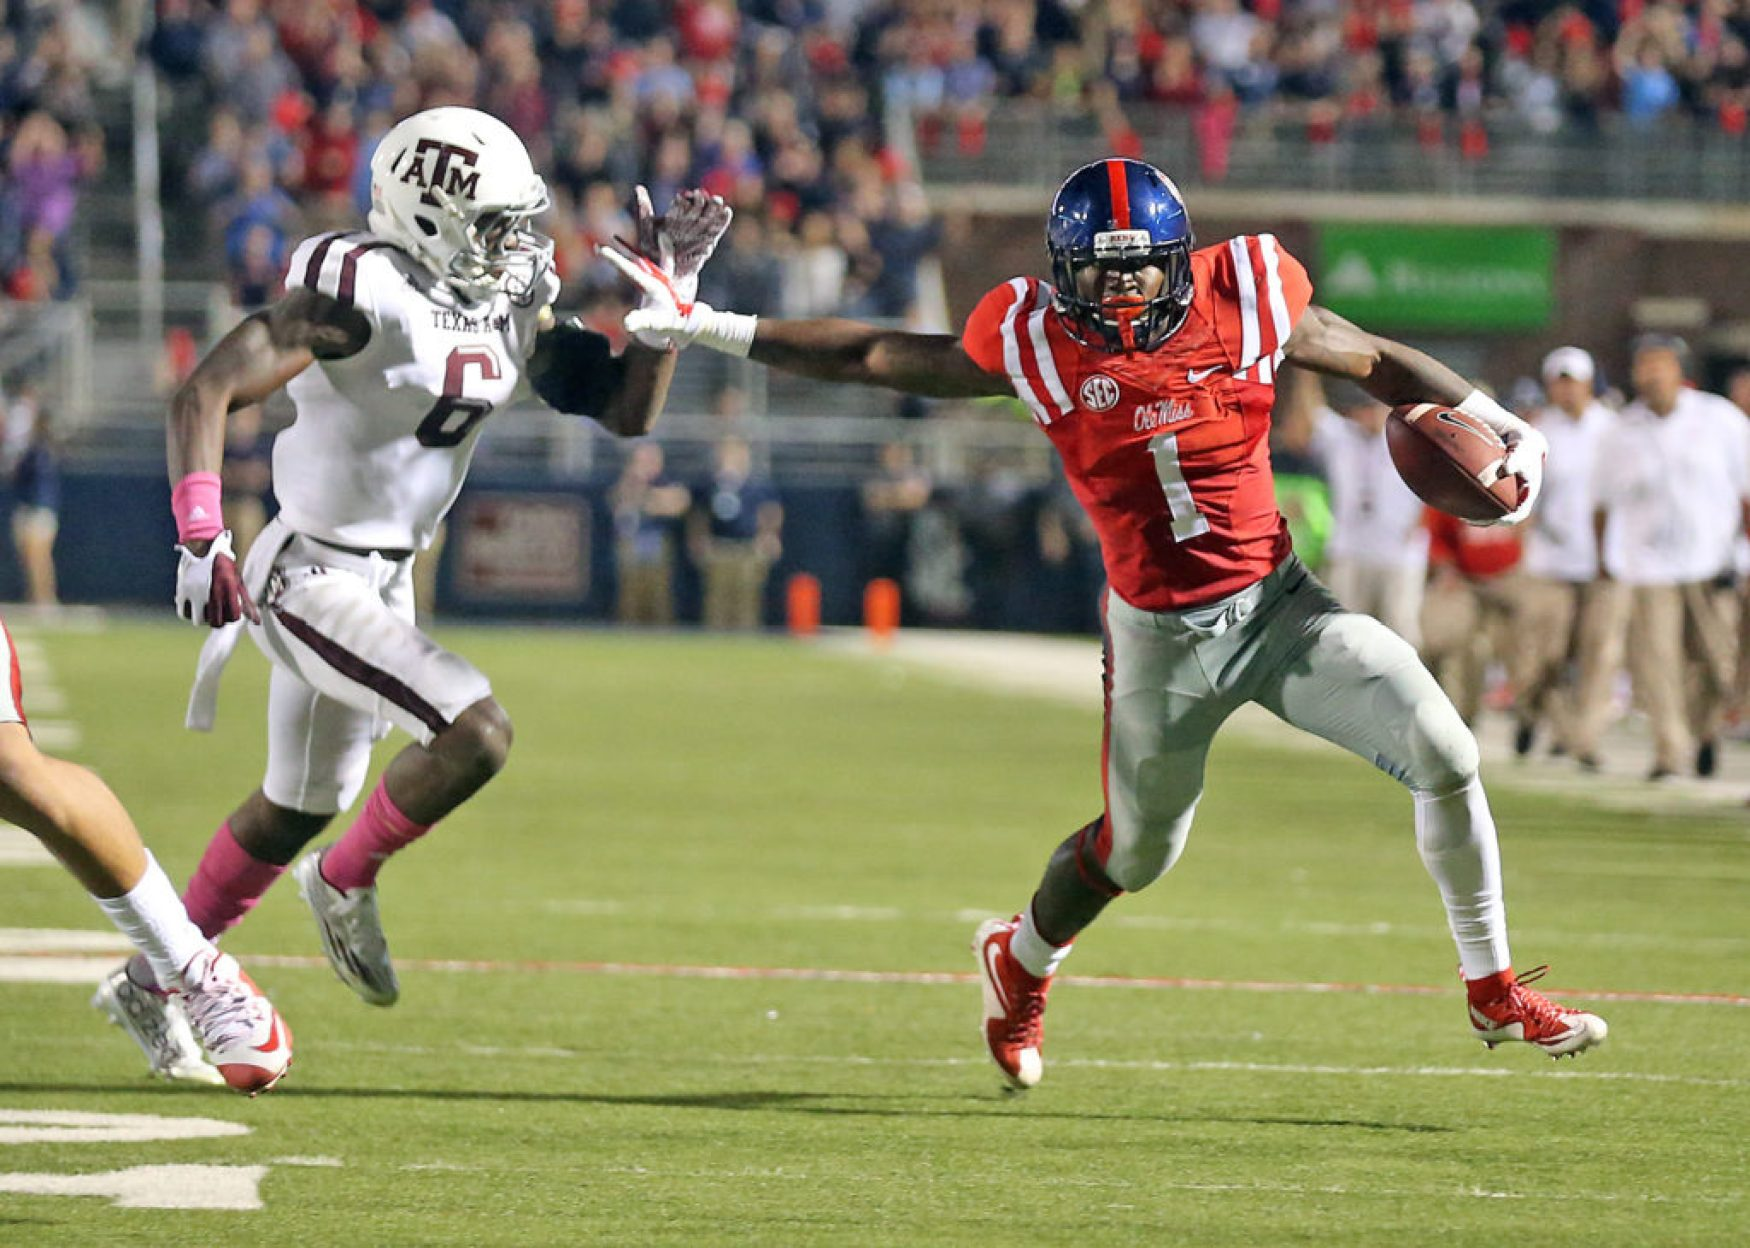 Laquon Treawell has plenty of attributes besides speed. (Photo by Joshua McCoy) Photo by Joshua McCoy/Ole Miss Athletics